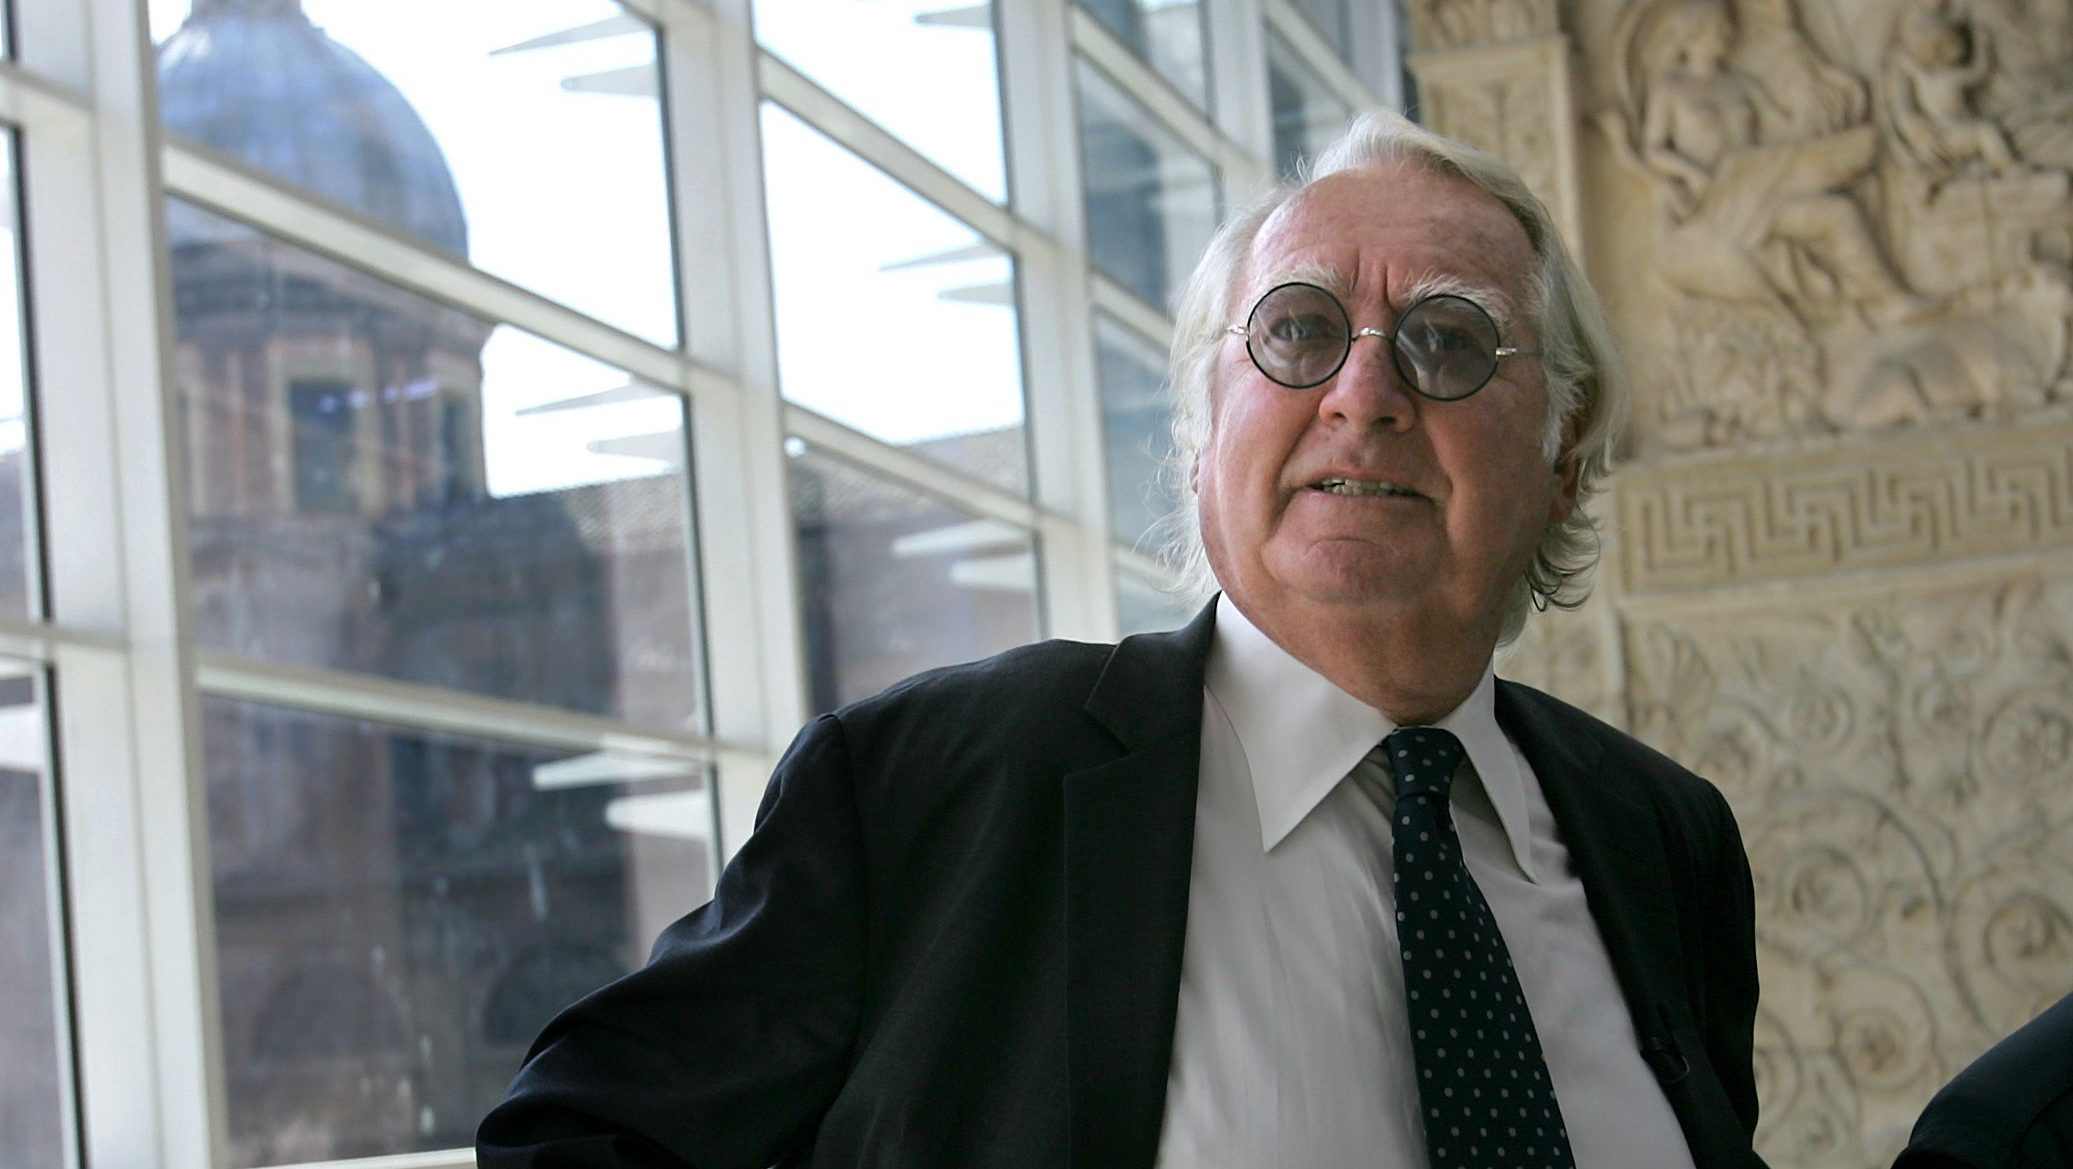 U.S. architect Richard Meier poses in the Ara Pacis museum which he designed in downtown Rome, in an April 21, 2006 file photo.